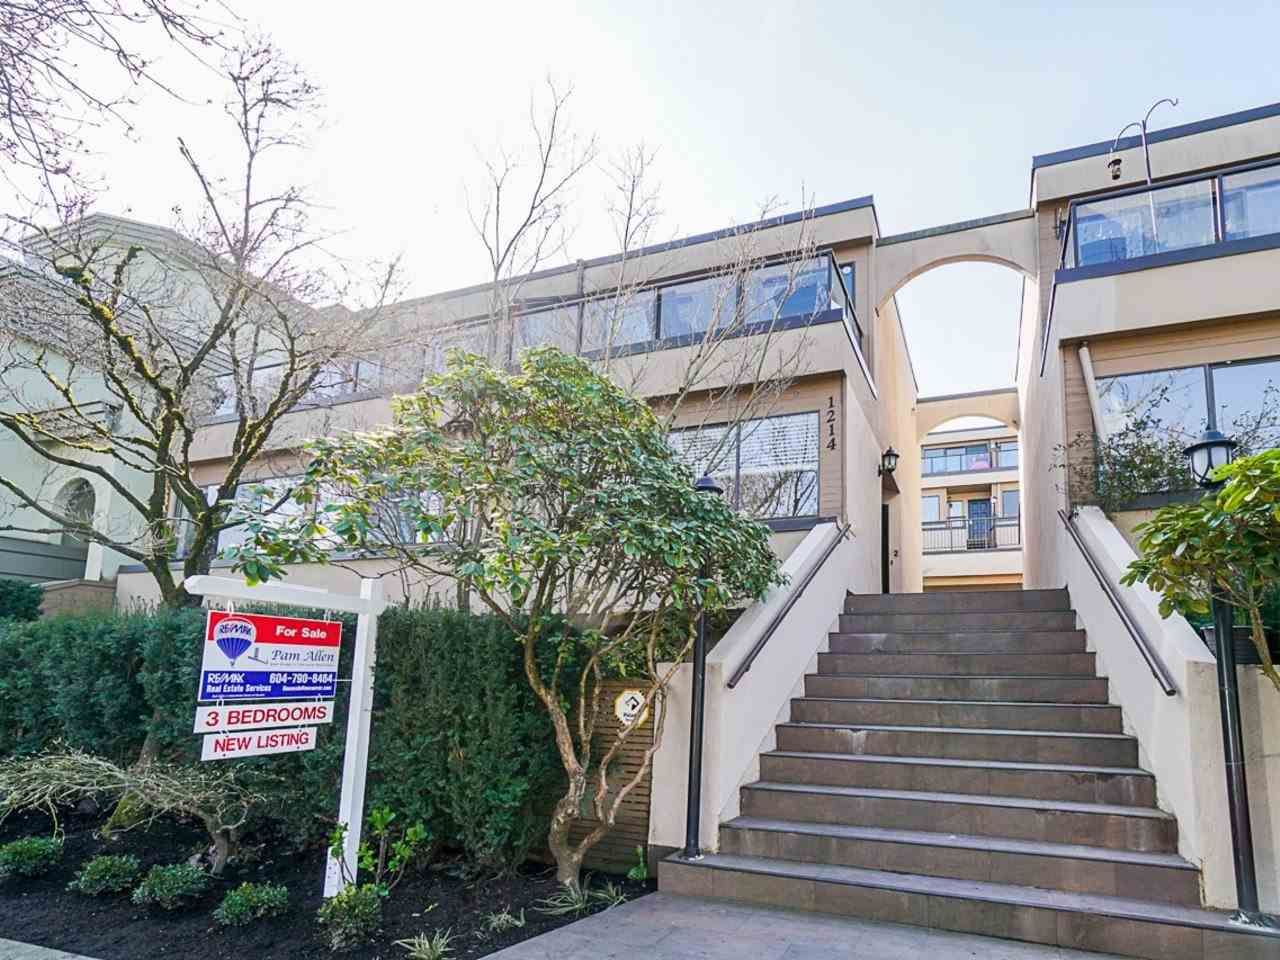 """Main Photo: 1 1214 W 7TH Avenue in Vancouver: Fairview VW Townhouse for sale in """"MARVISTA COURTS"""" (Vancouver West)  : MLS®# R2560085"""